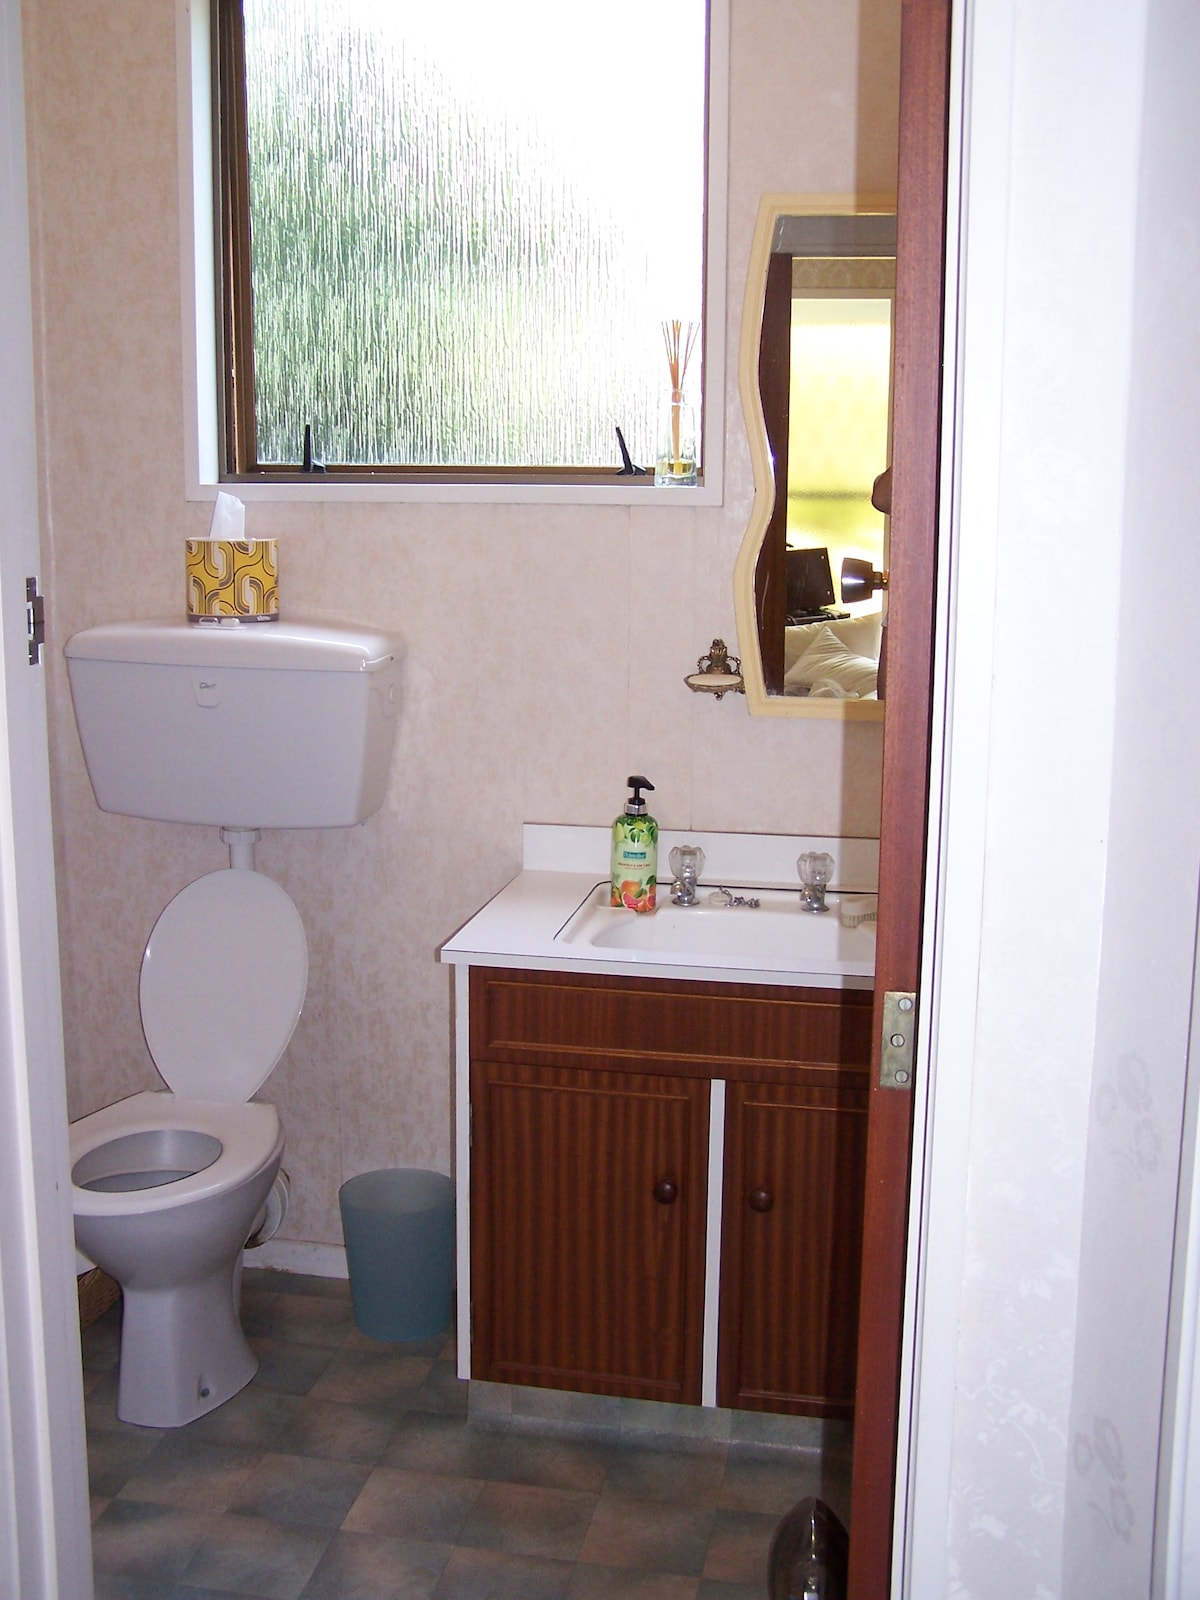 Guest's private bathroom